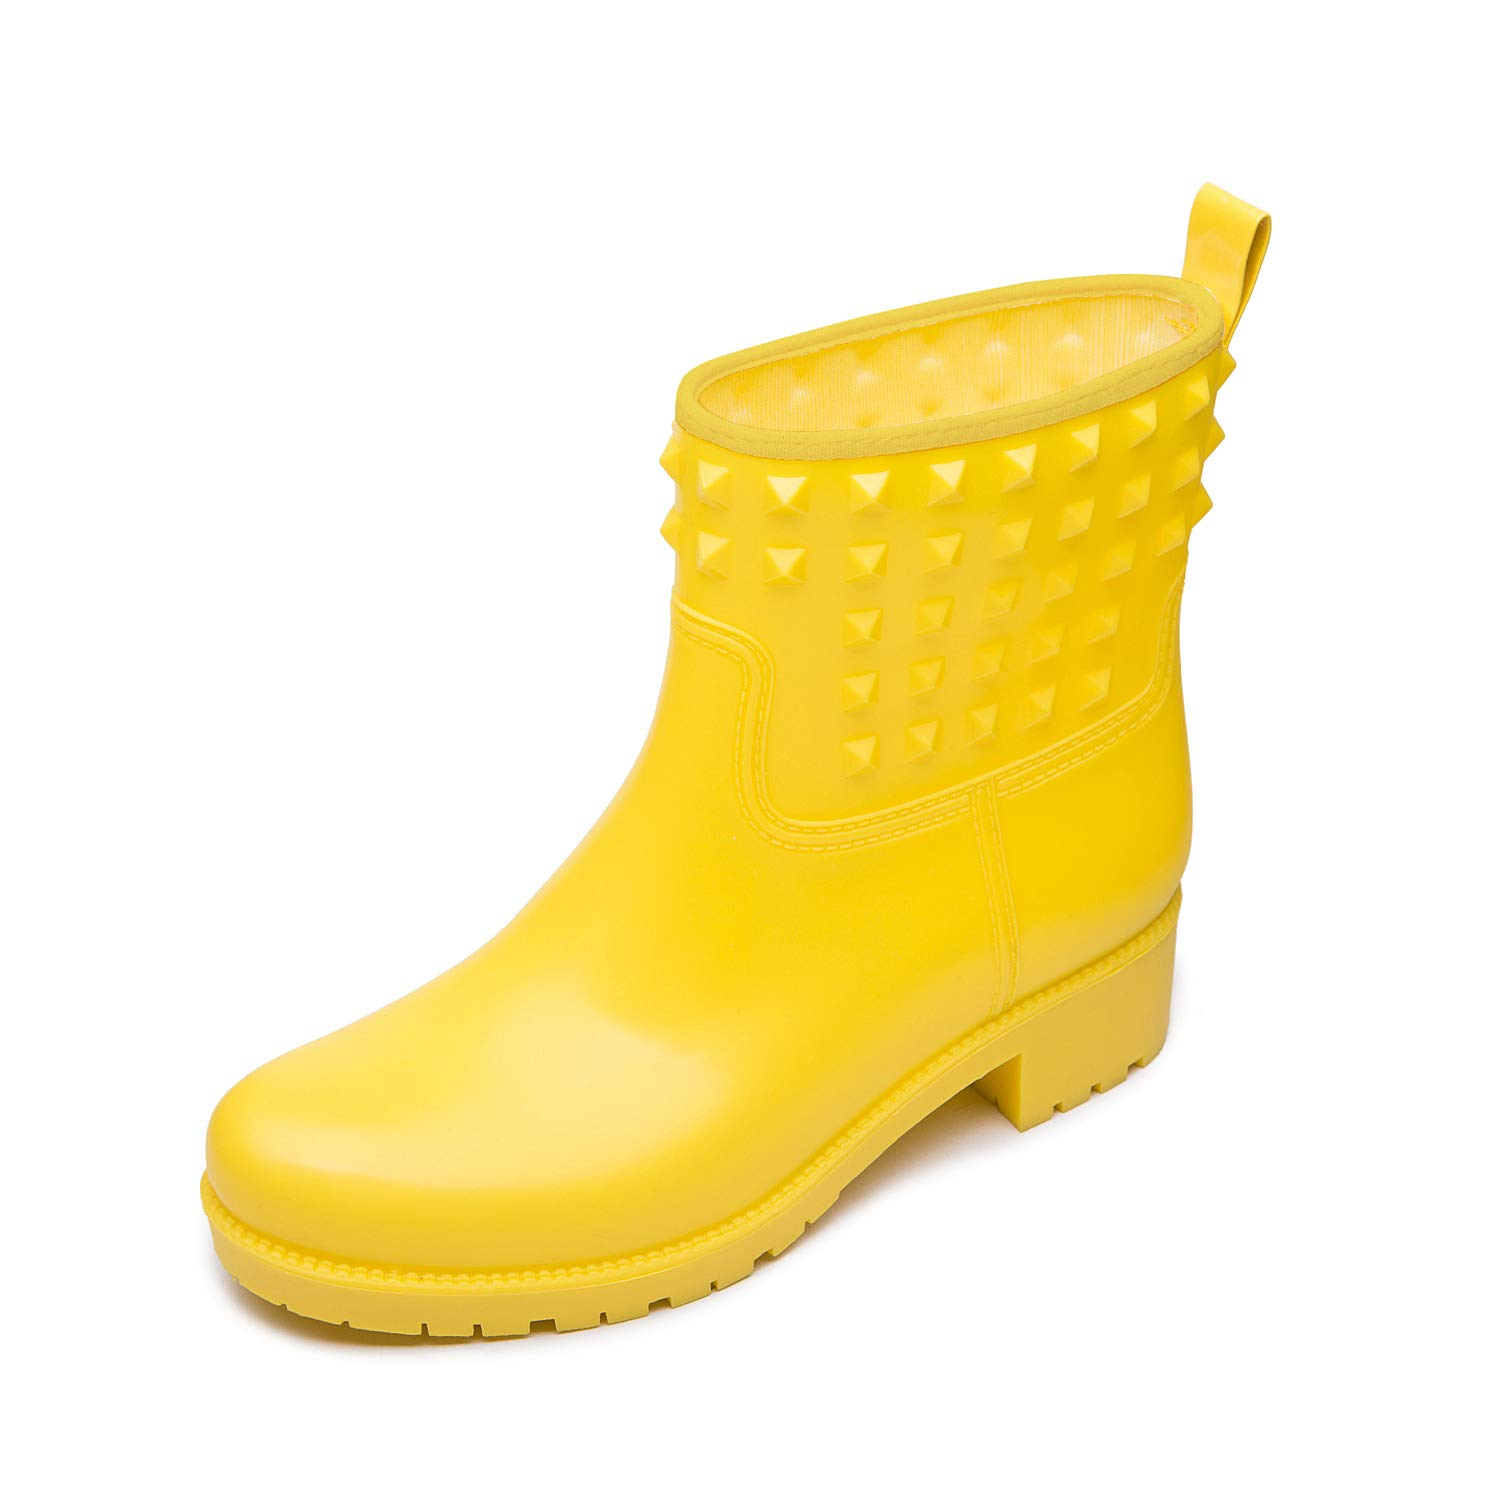 DKSUKO Women's Rain Boots with Rivet Short Ankle Winter Boots Waterproof Rubber Shoes (8 B(M) US, Yellow) by DKSUKO